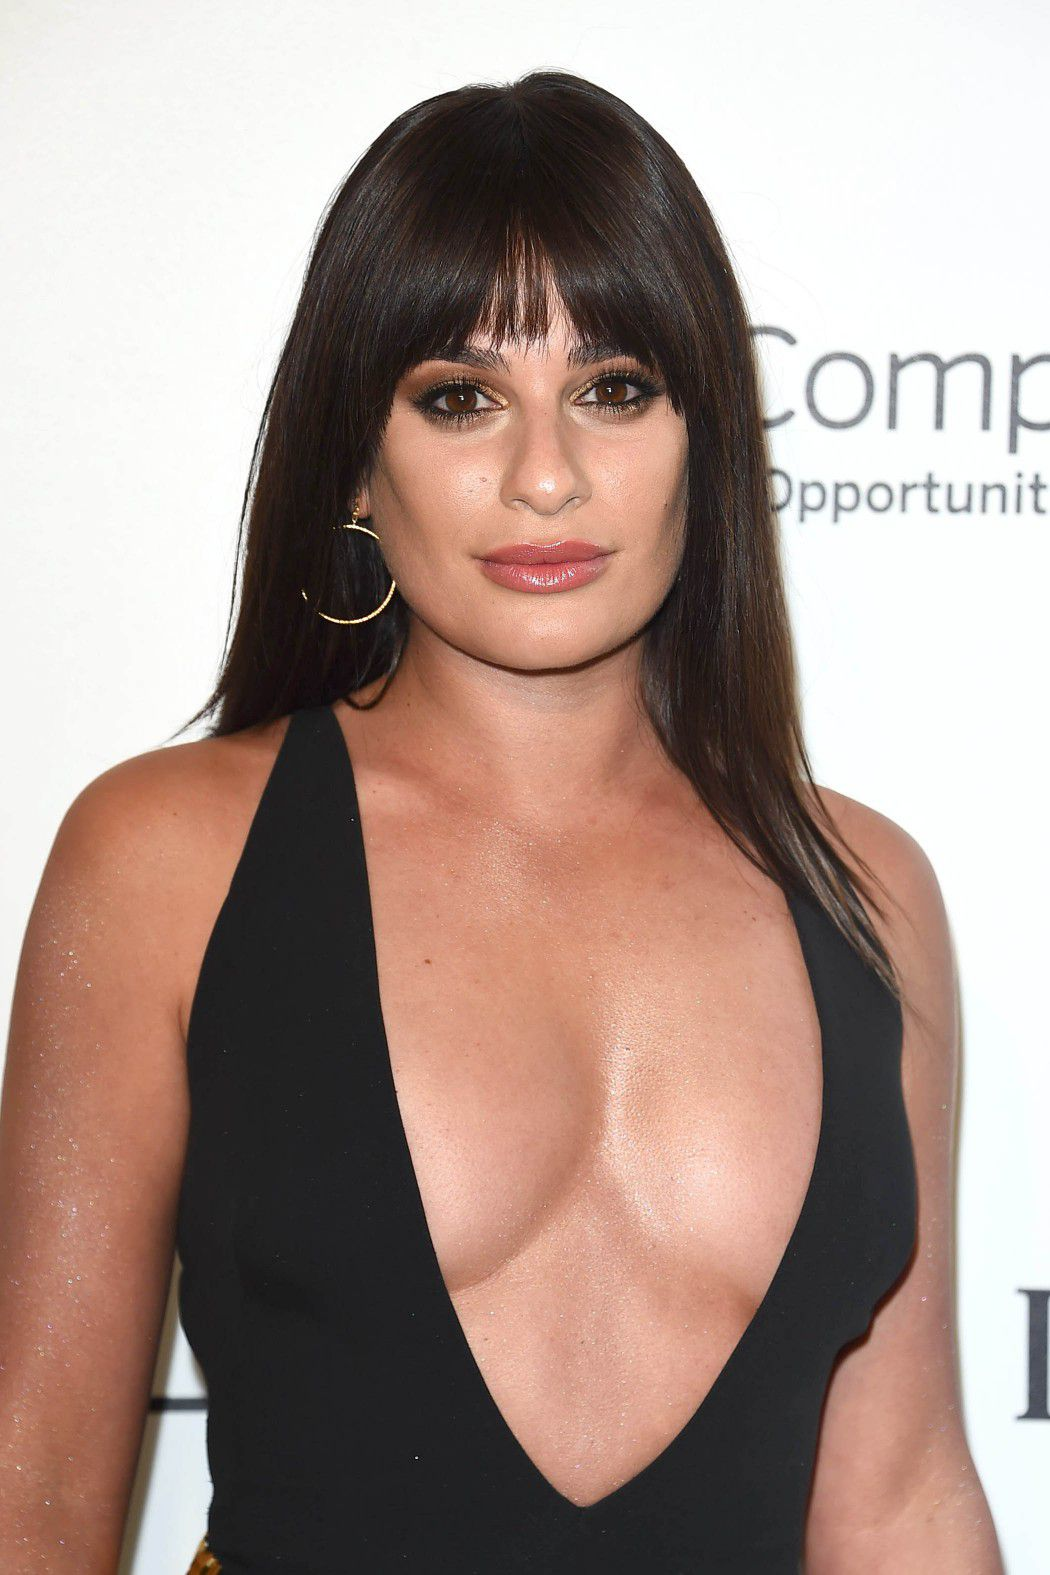 lea-michele-nip-slip-and-cleavage-at-elton-johns-aids-foundation-oscars-viewing-party-5691